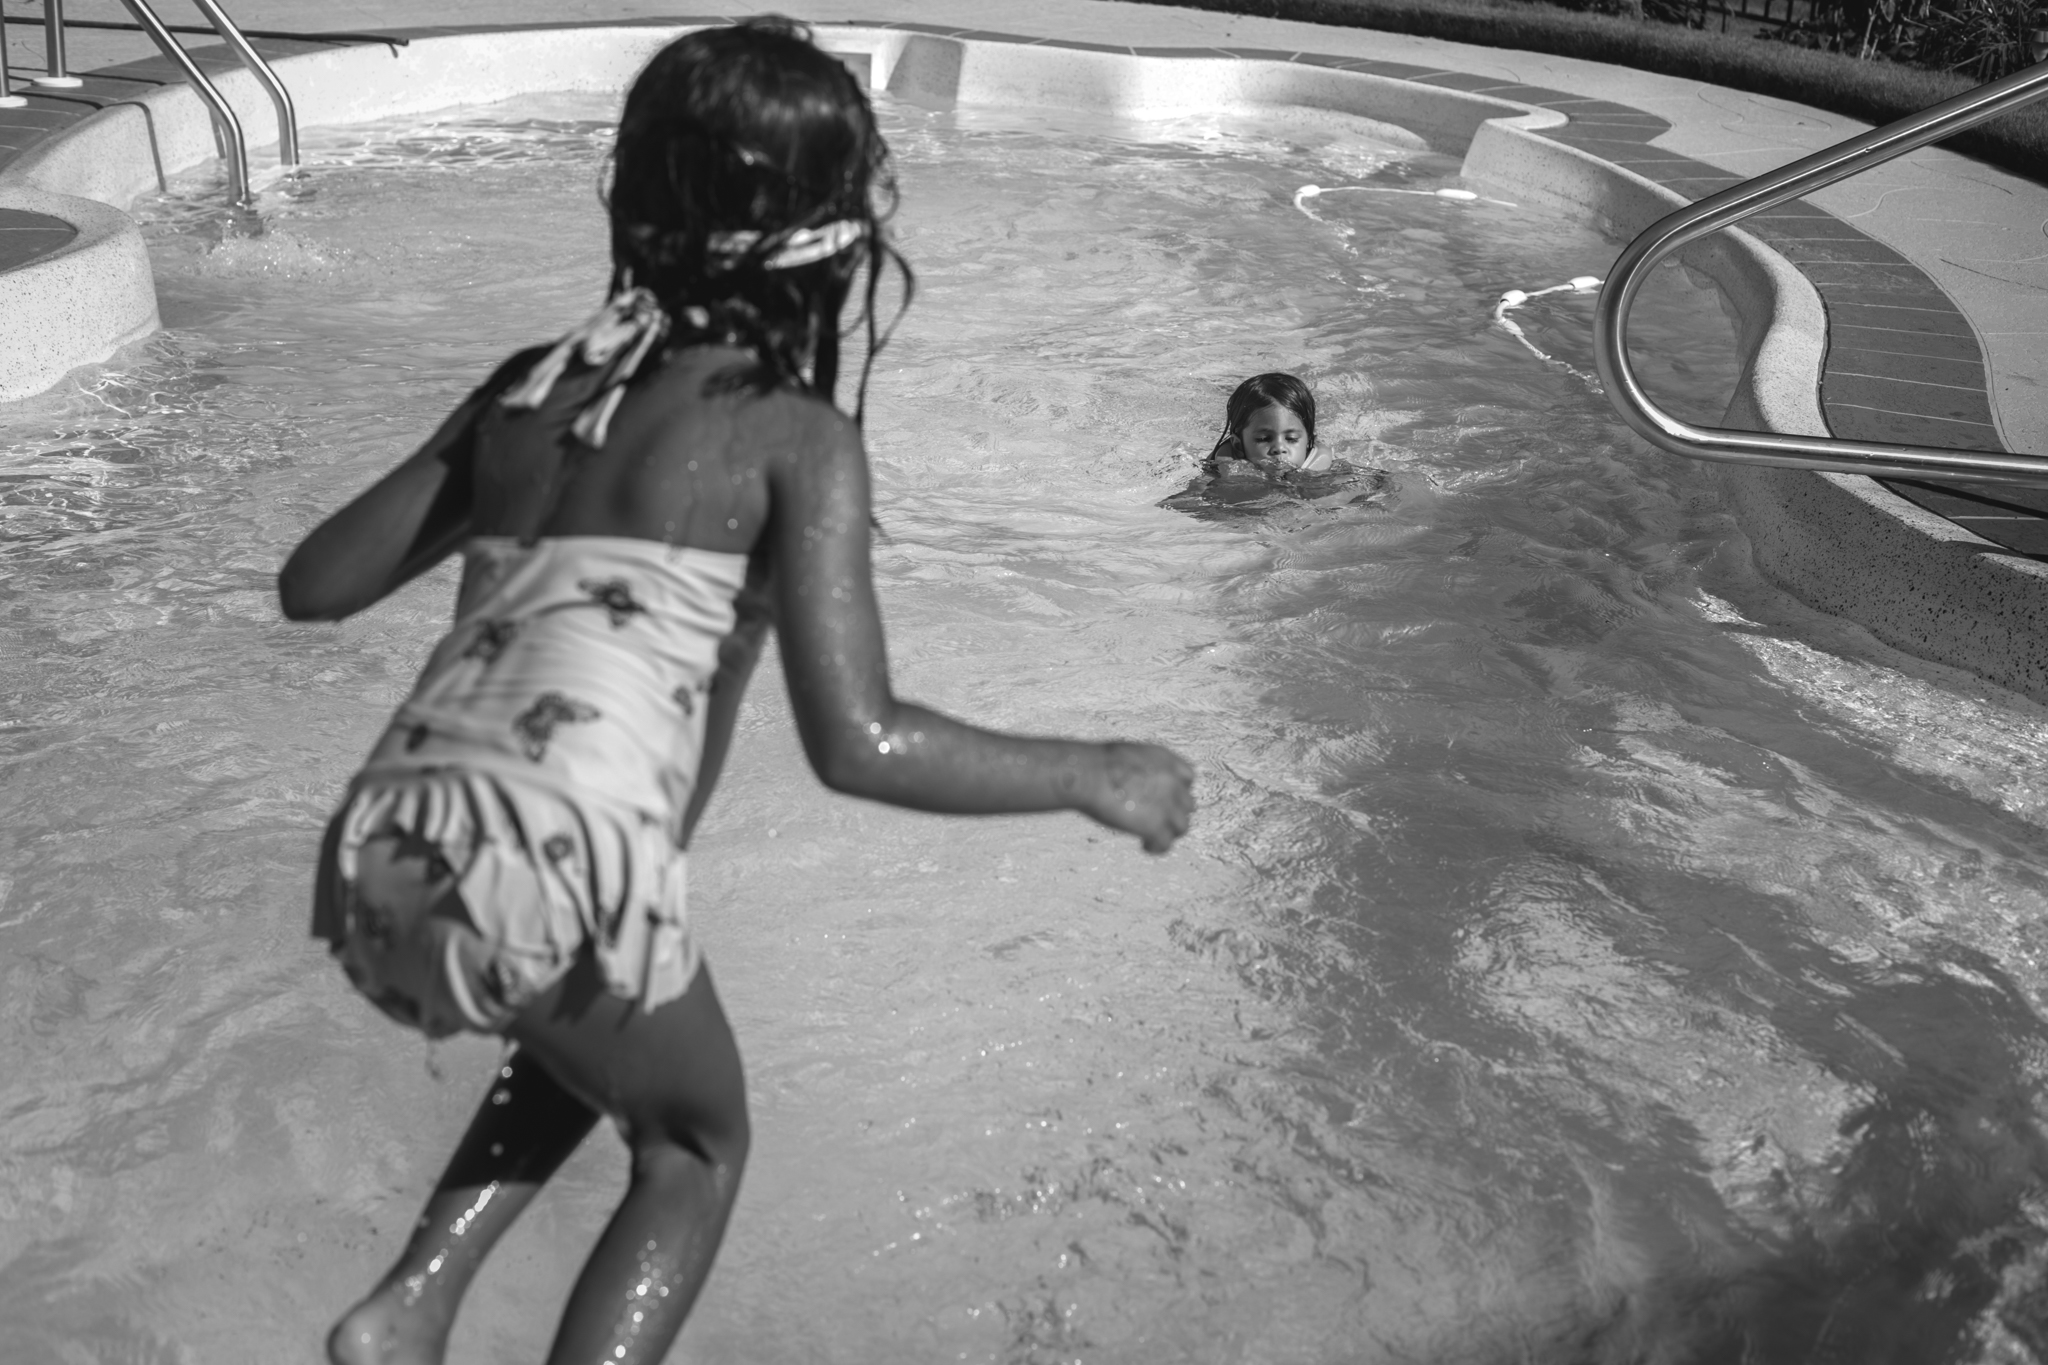 Picture from behind a young girl who is jumping into a pool where her sister is already swimming